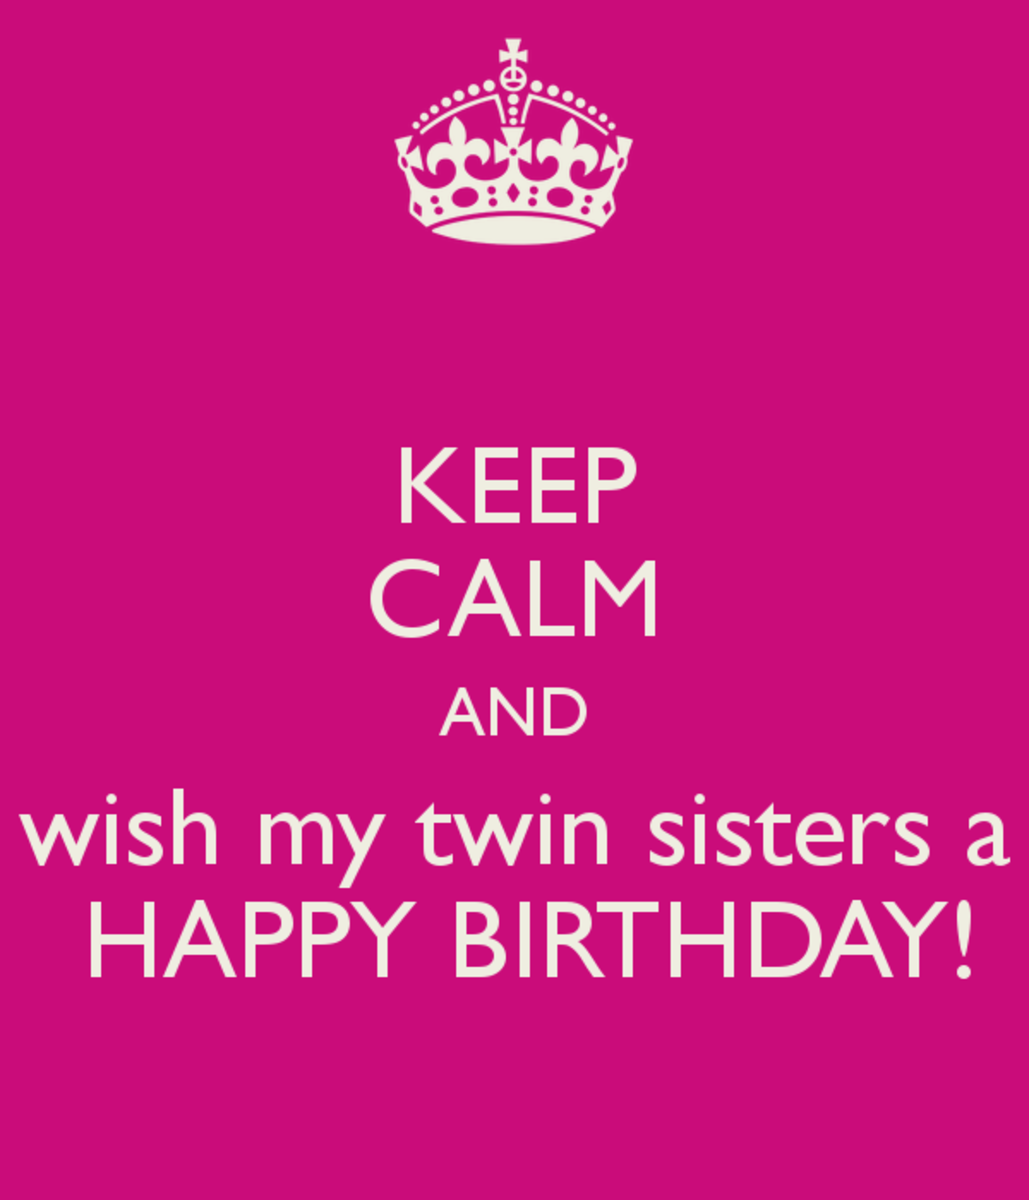 Just Wishing Happy Birthday To A Sister Is One For Your Own Twin Below Find Some Great Cards With Quotes On Them Her And